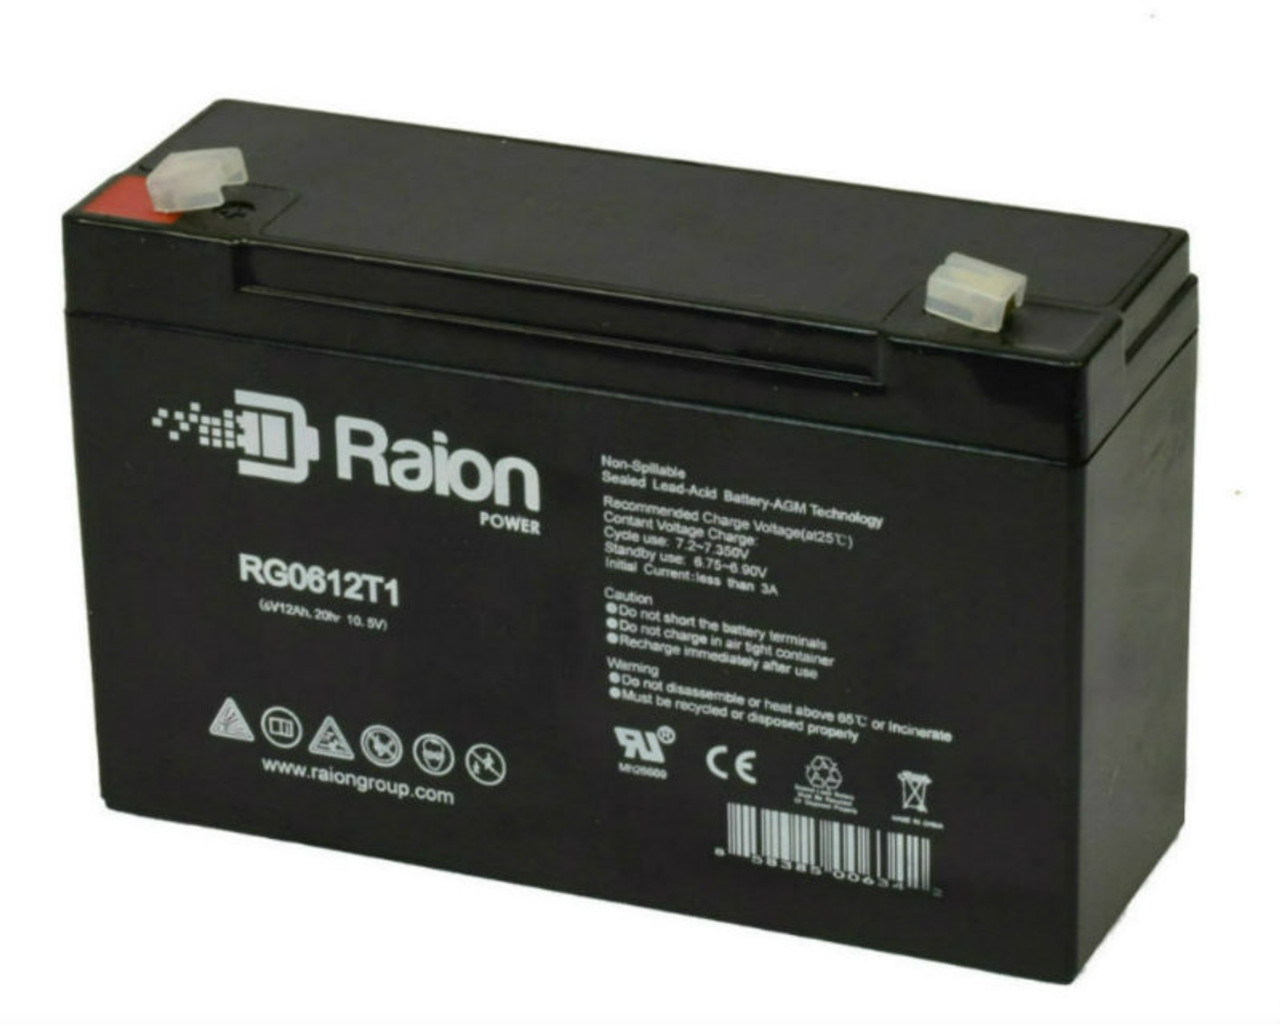 Raion Power RG06120T1 Replacement Battery Pack for Lithonia ELB0608 emergency light